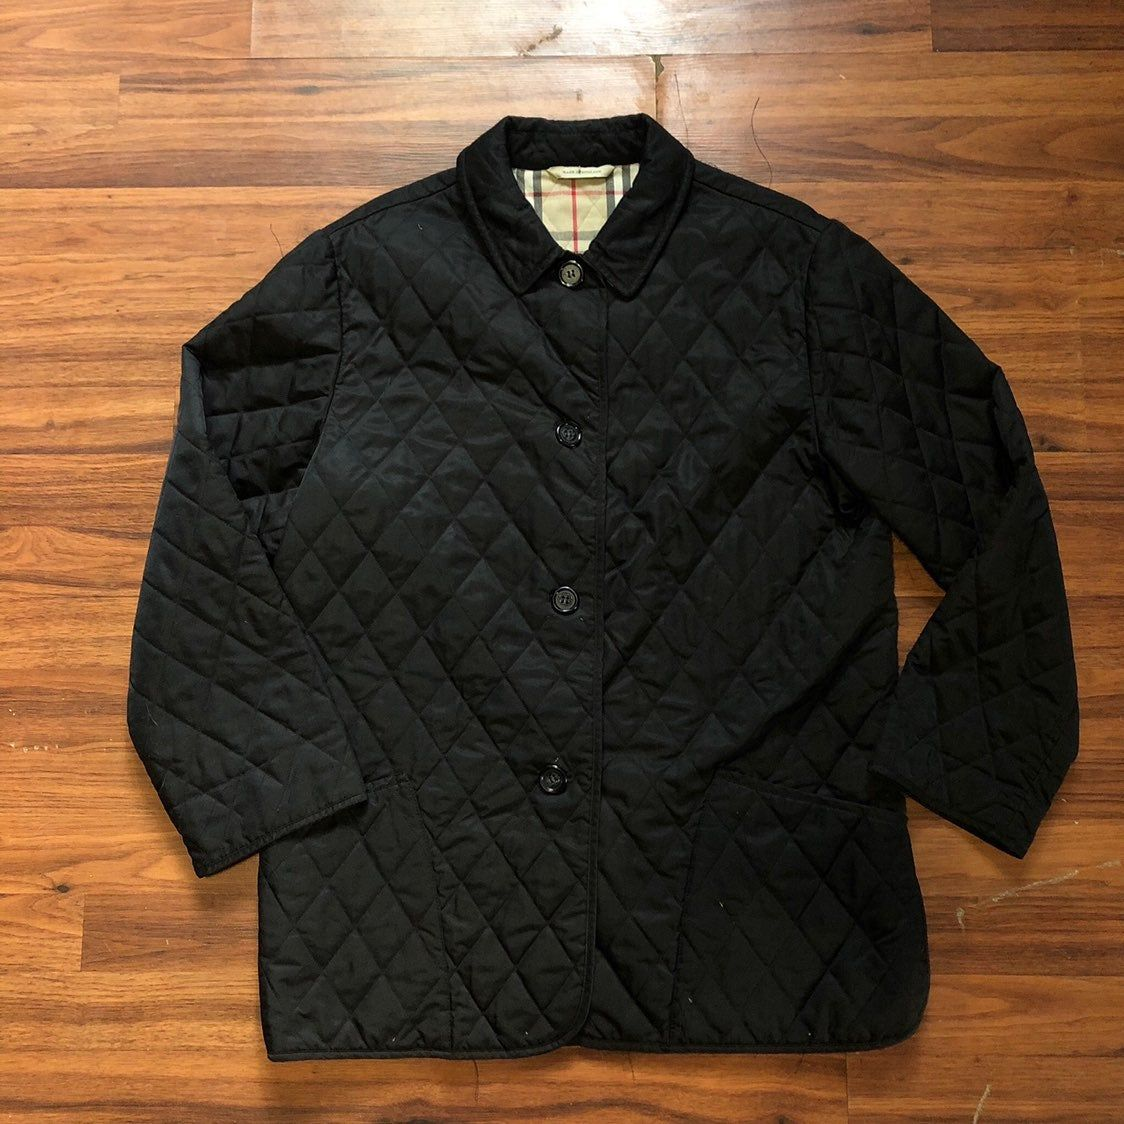 Vintage Burberry Quilted Jacket Coat There Is No Size Tag But I Would Say It Is A Women S L There Is Loo Burberry Quilted Jacket Plaid Coat Black Plaid